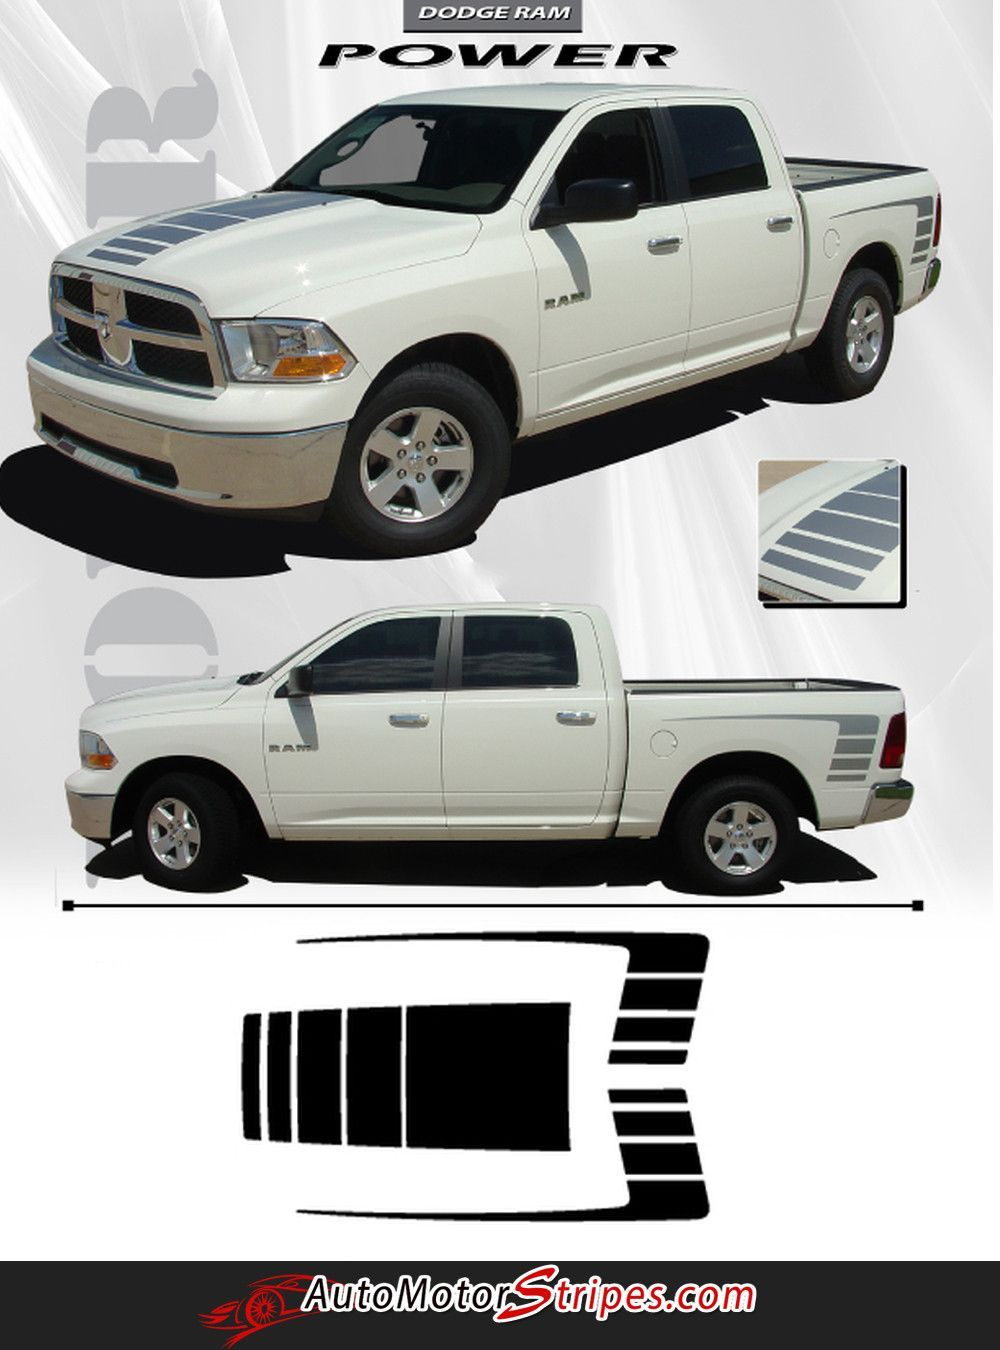 Vehicle specific style dodge ram truck power hood strobes and rear bed vinyl graphic stripe decals year fitment 2009 2010 2011 2012 2013 2014 2015 2016